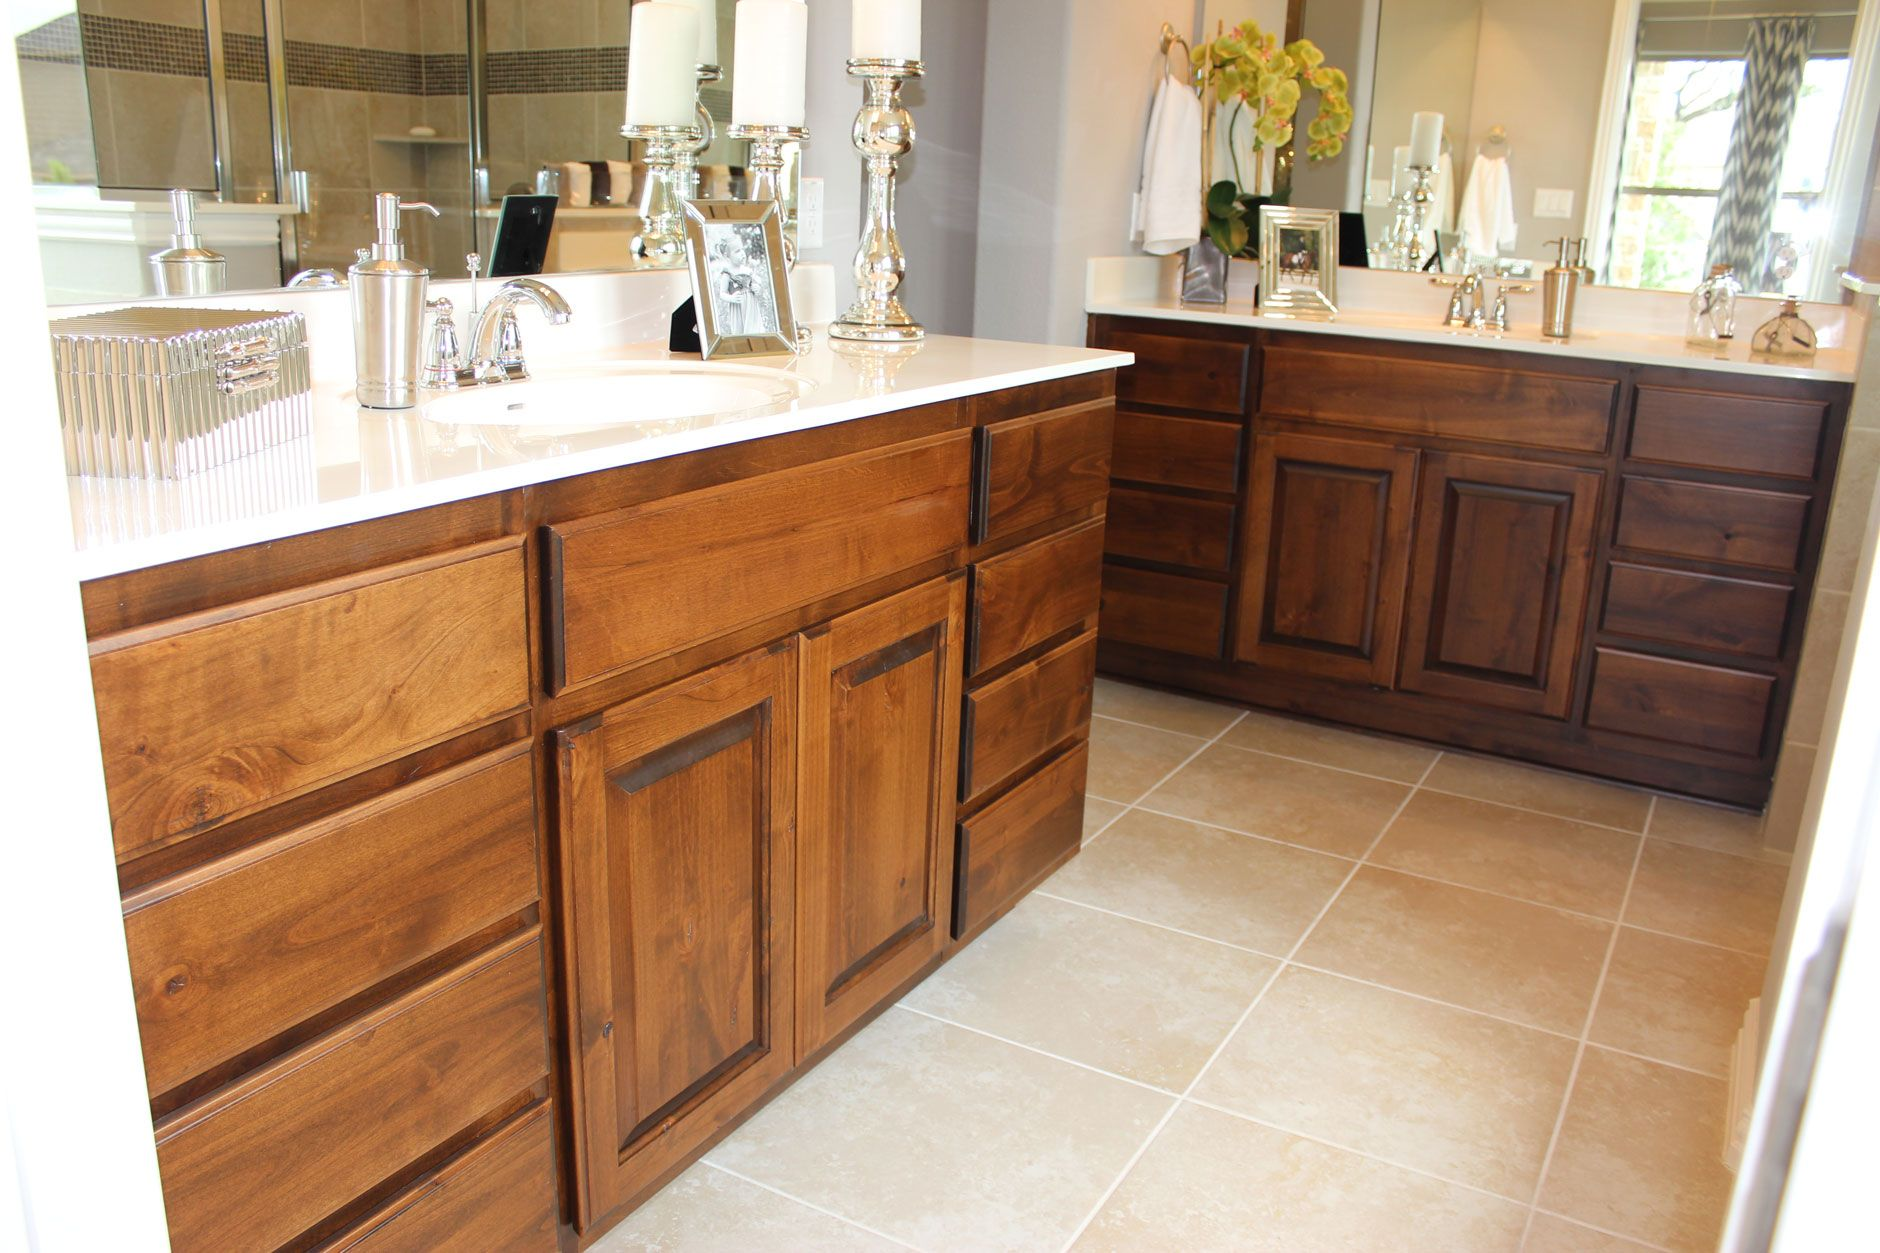 L Shaped Master Bath With Knotty Alder Cabinets And Light Counter Tops With  2 Separate Vanities